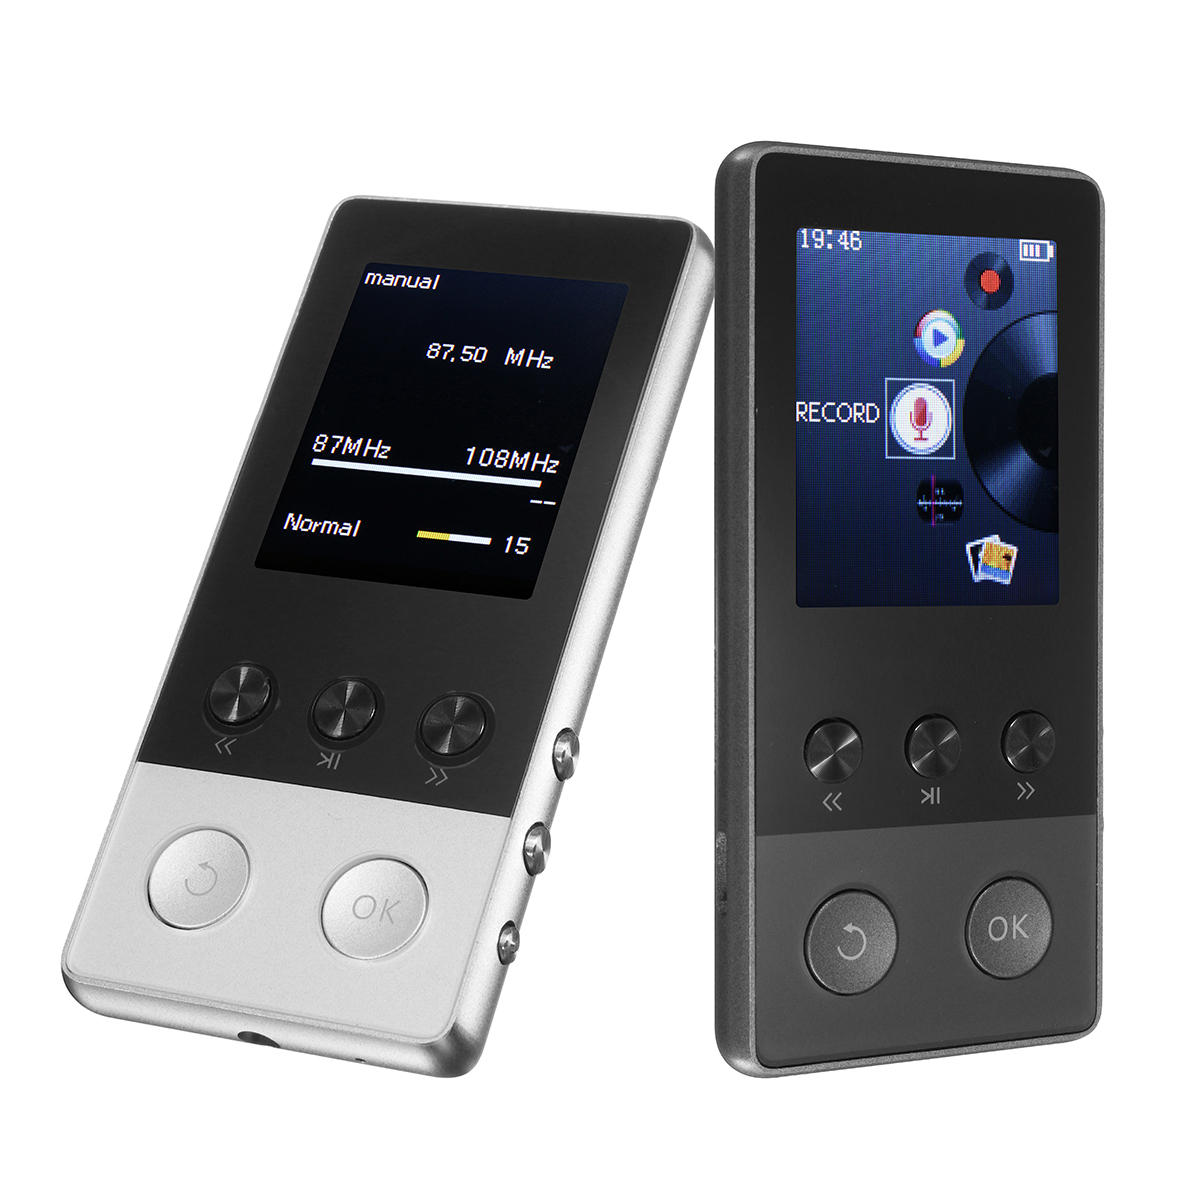 c4ffe7e0f A5 Plus 1.8 Inch 8GB 250 Hours Portable MP3 Lossless Music Player FM TF  Pedometer Function COD